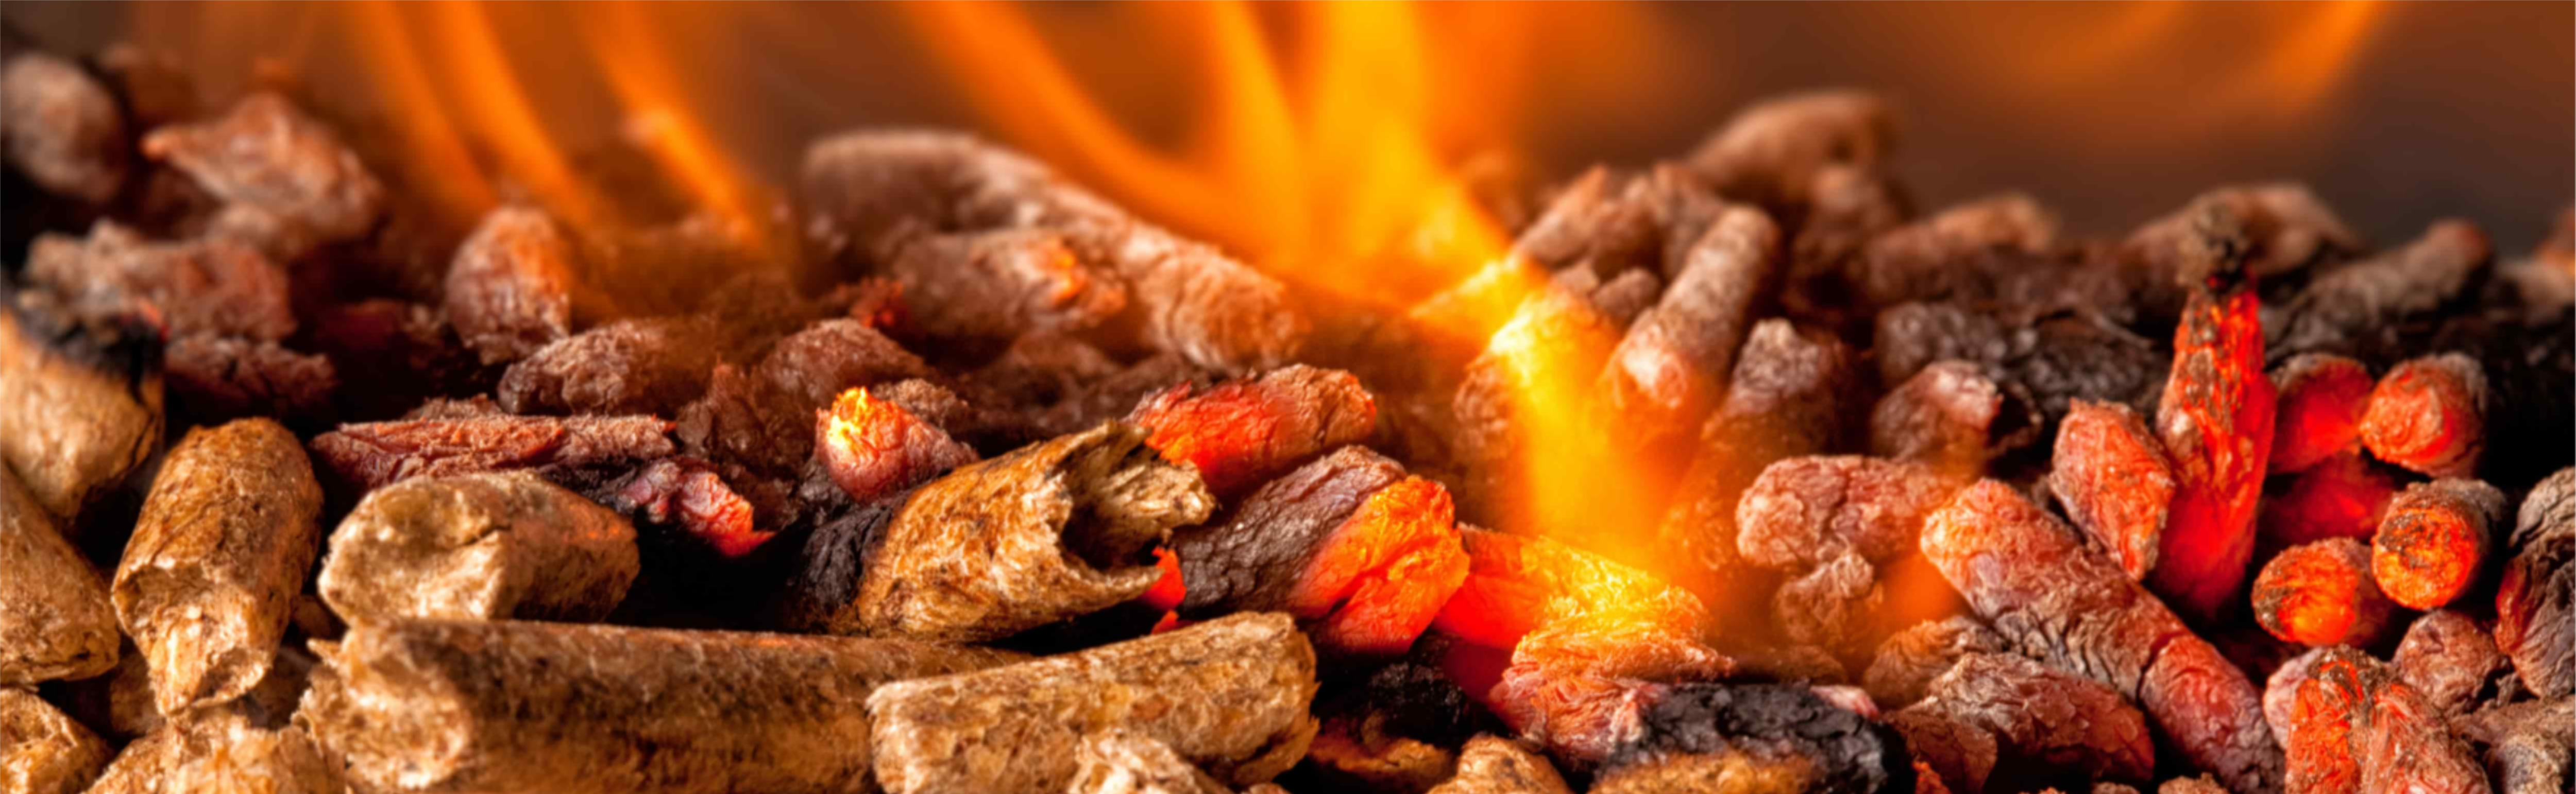 All About Pellet Fires - How Does A Pellet Fire Work?